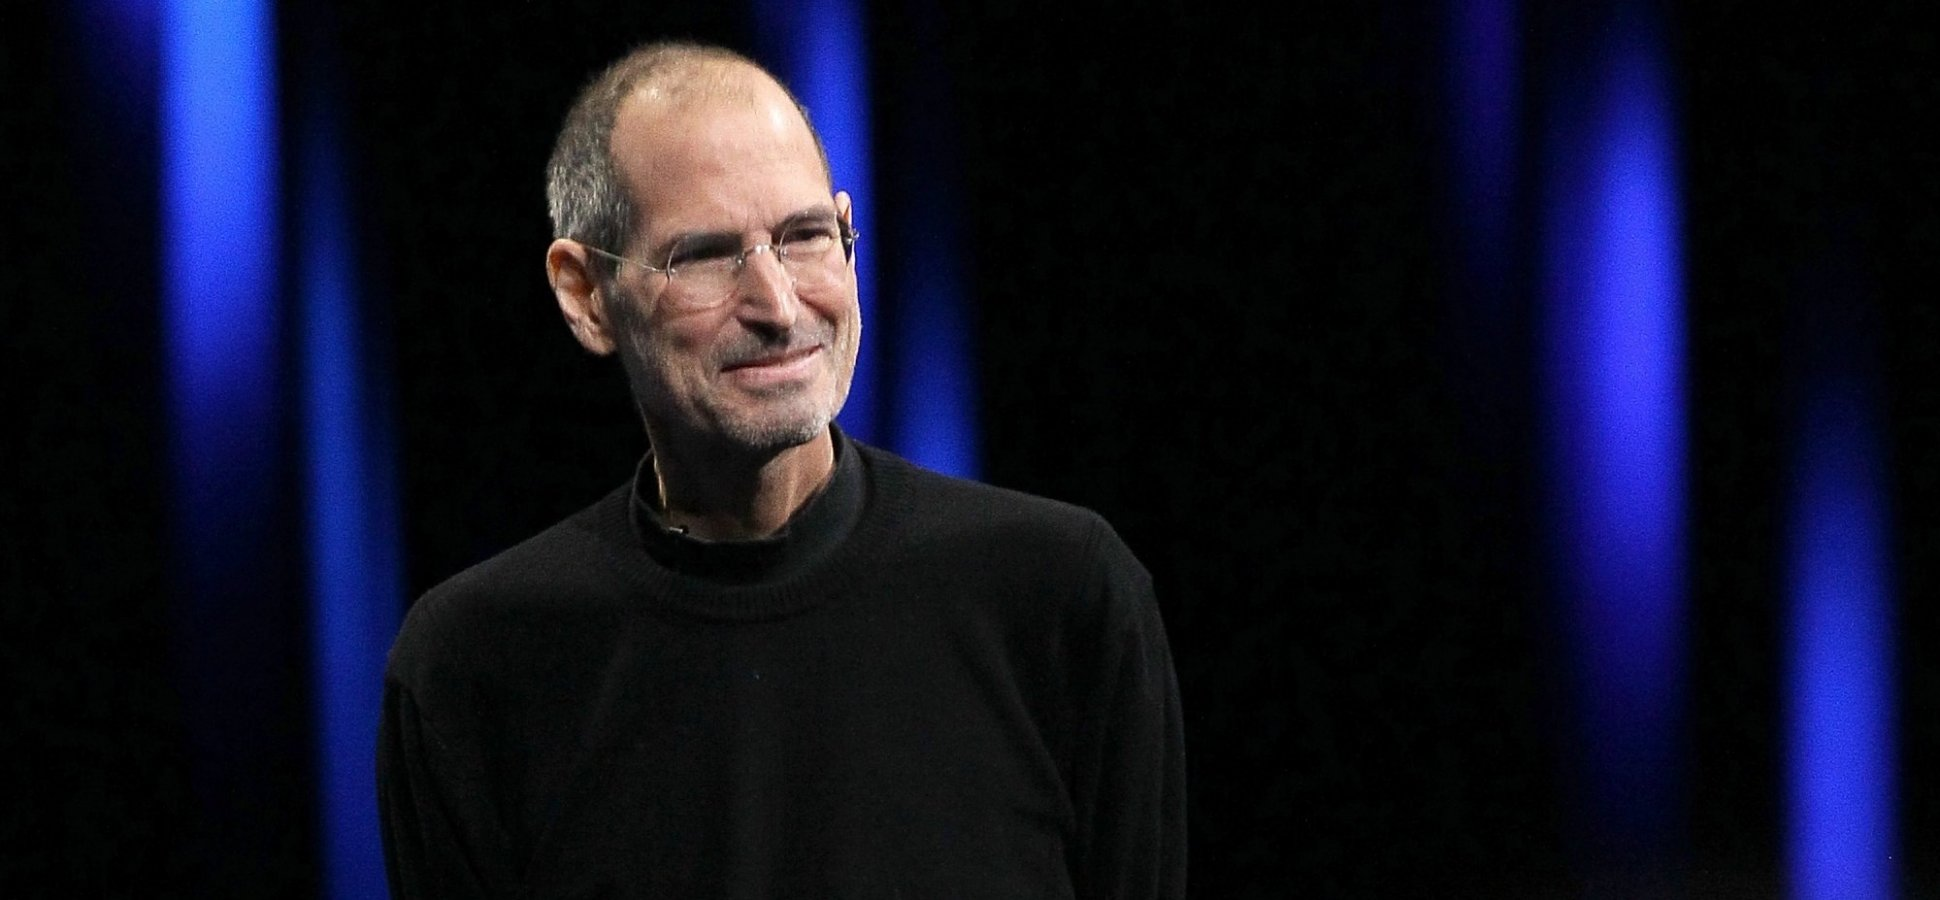 Steve Jobs Said This Is the Most Important 'Tool' He Ever Encountered to Make the Most of His Life